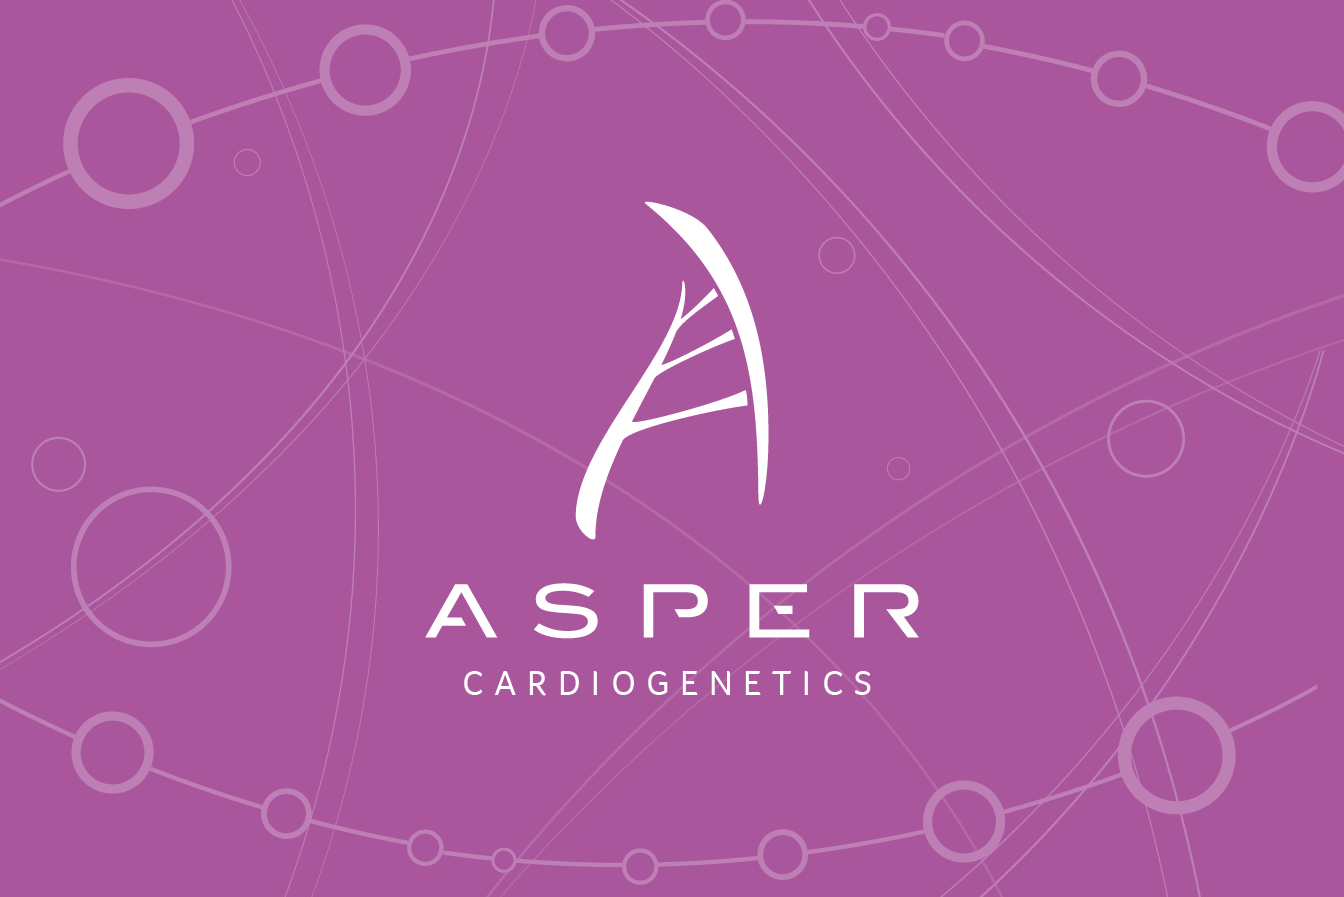 New panel in Asper Cardiogenetics